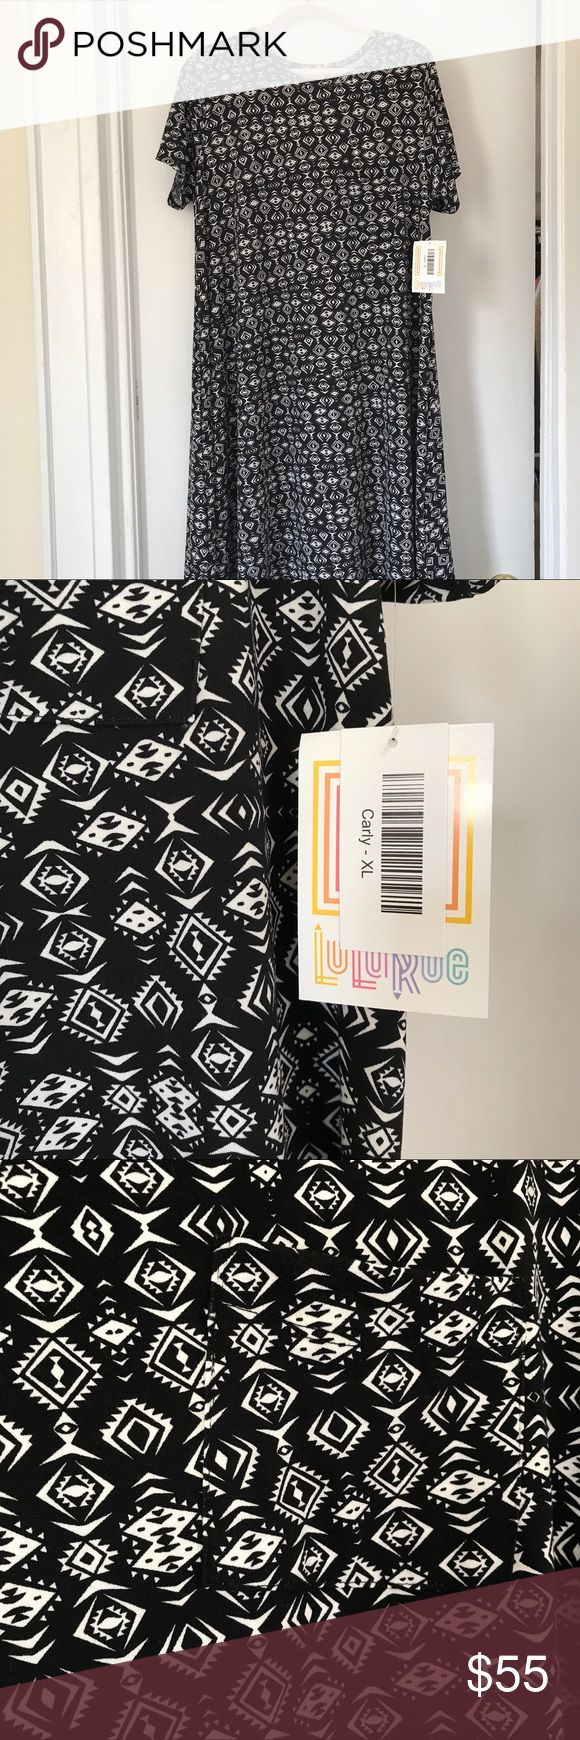 BNWT Lularoe XL Carly Black & White Dress BNWT Lularoe XL Carly Black & White Dress. Black background and white Aztec and Arrows design/ pattern. Gorgeous tee shirt swing dress with breast pockets and high low hemline. This will make an easy weekend brunch dress, casual office dress, or even a trendy beach cover up! Will fit plus due to generous sizing. Slight stretch. LuLaRoe Dresses Midi